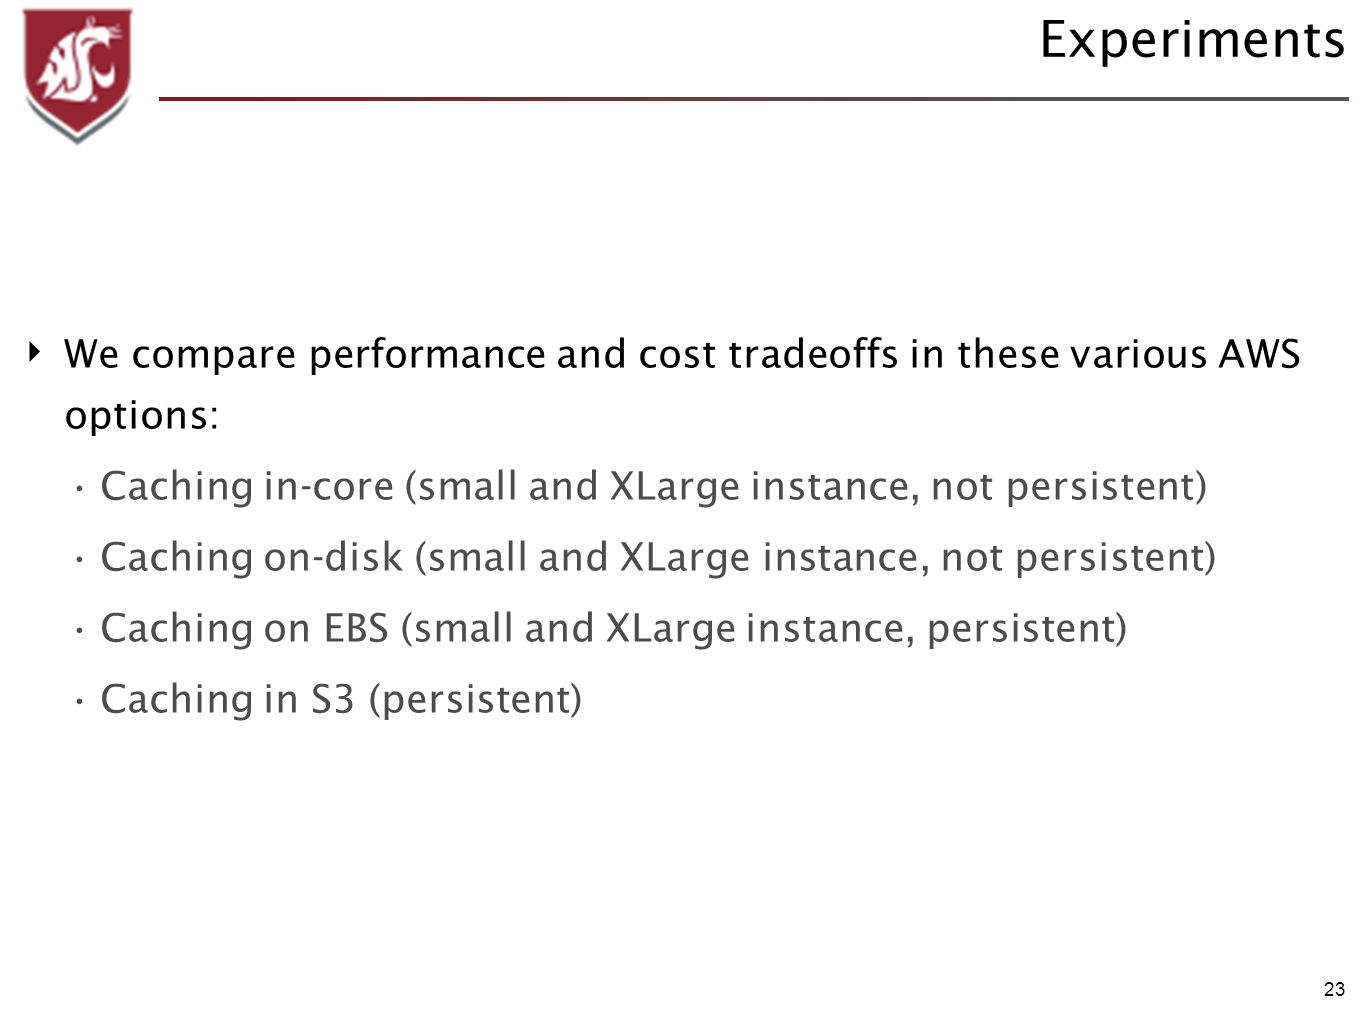 23 Experiments We compare performance and cost tradeoffs in these various AWS options: Caching in-core (small and XLarge instance, not persistent) Caching on-disk (small and XLarge instance, not persistent) Caching on EBS (small and XLarge instance, persistent) Caching in S3 (persistent)